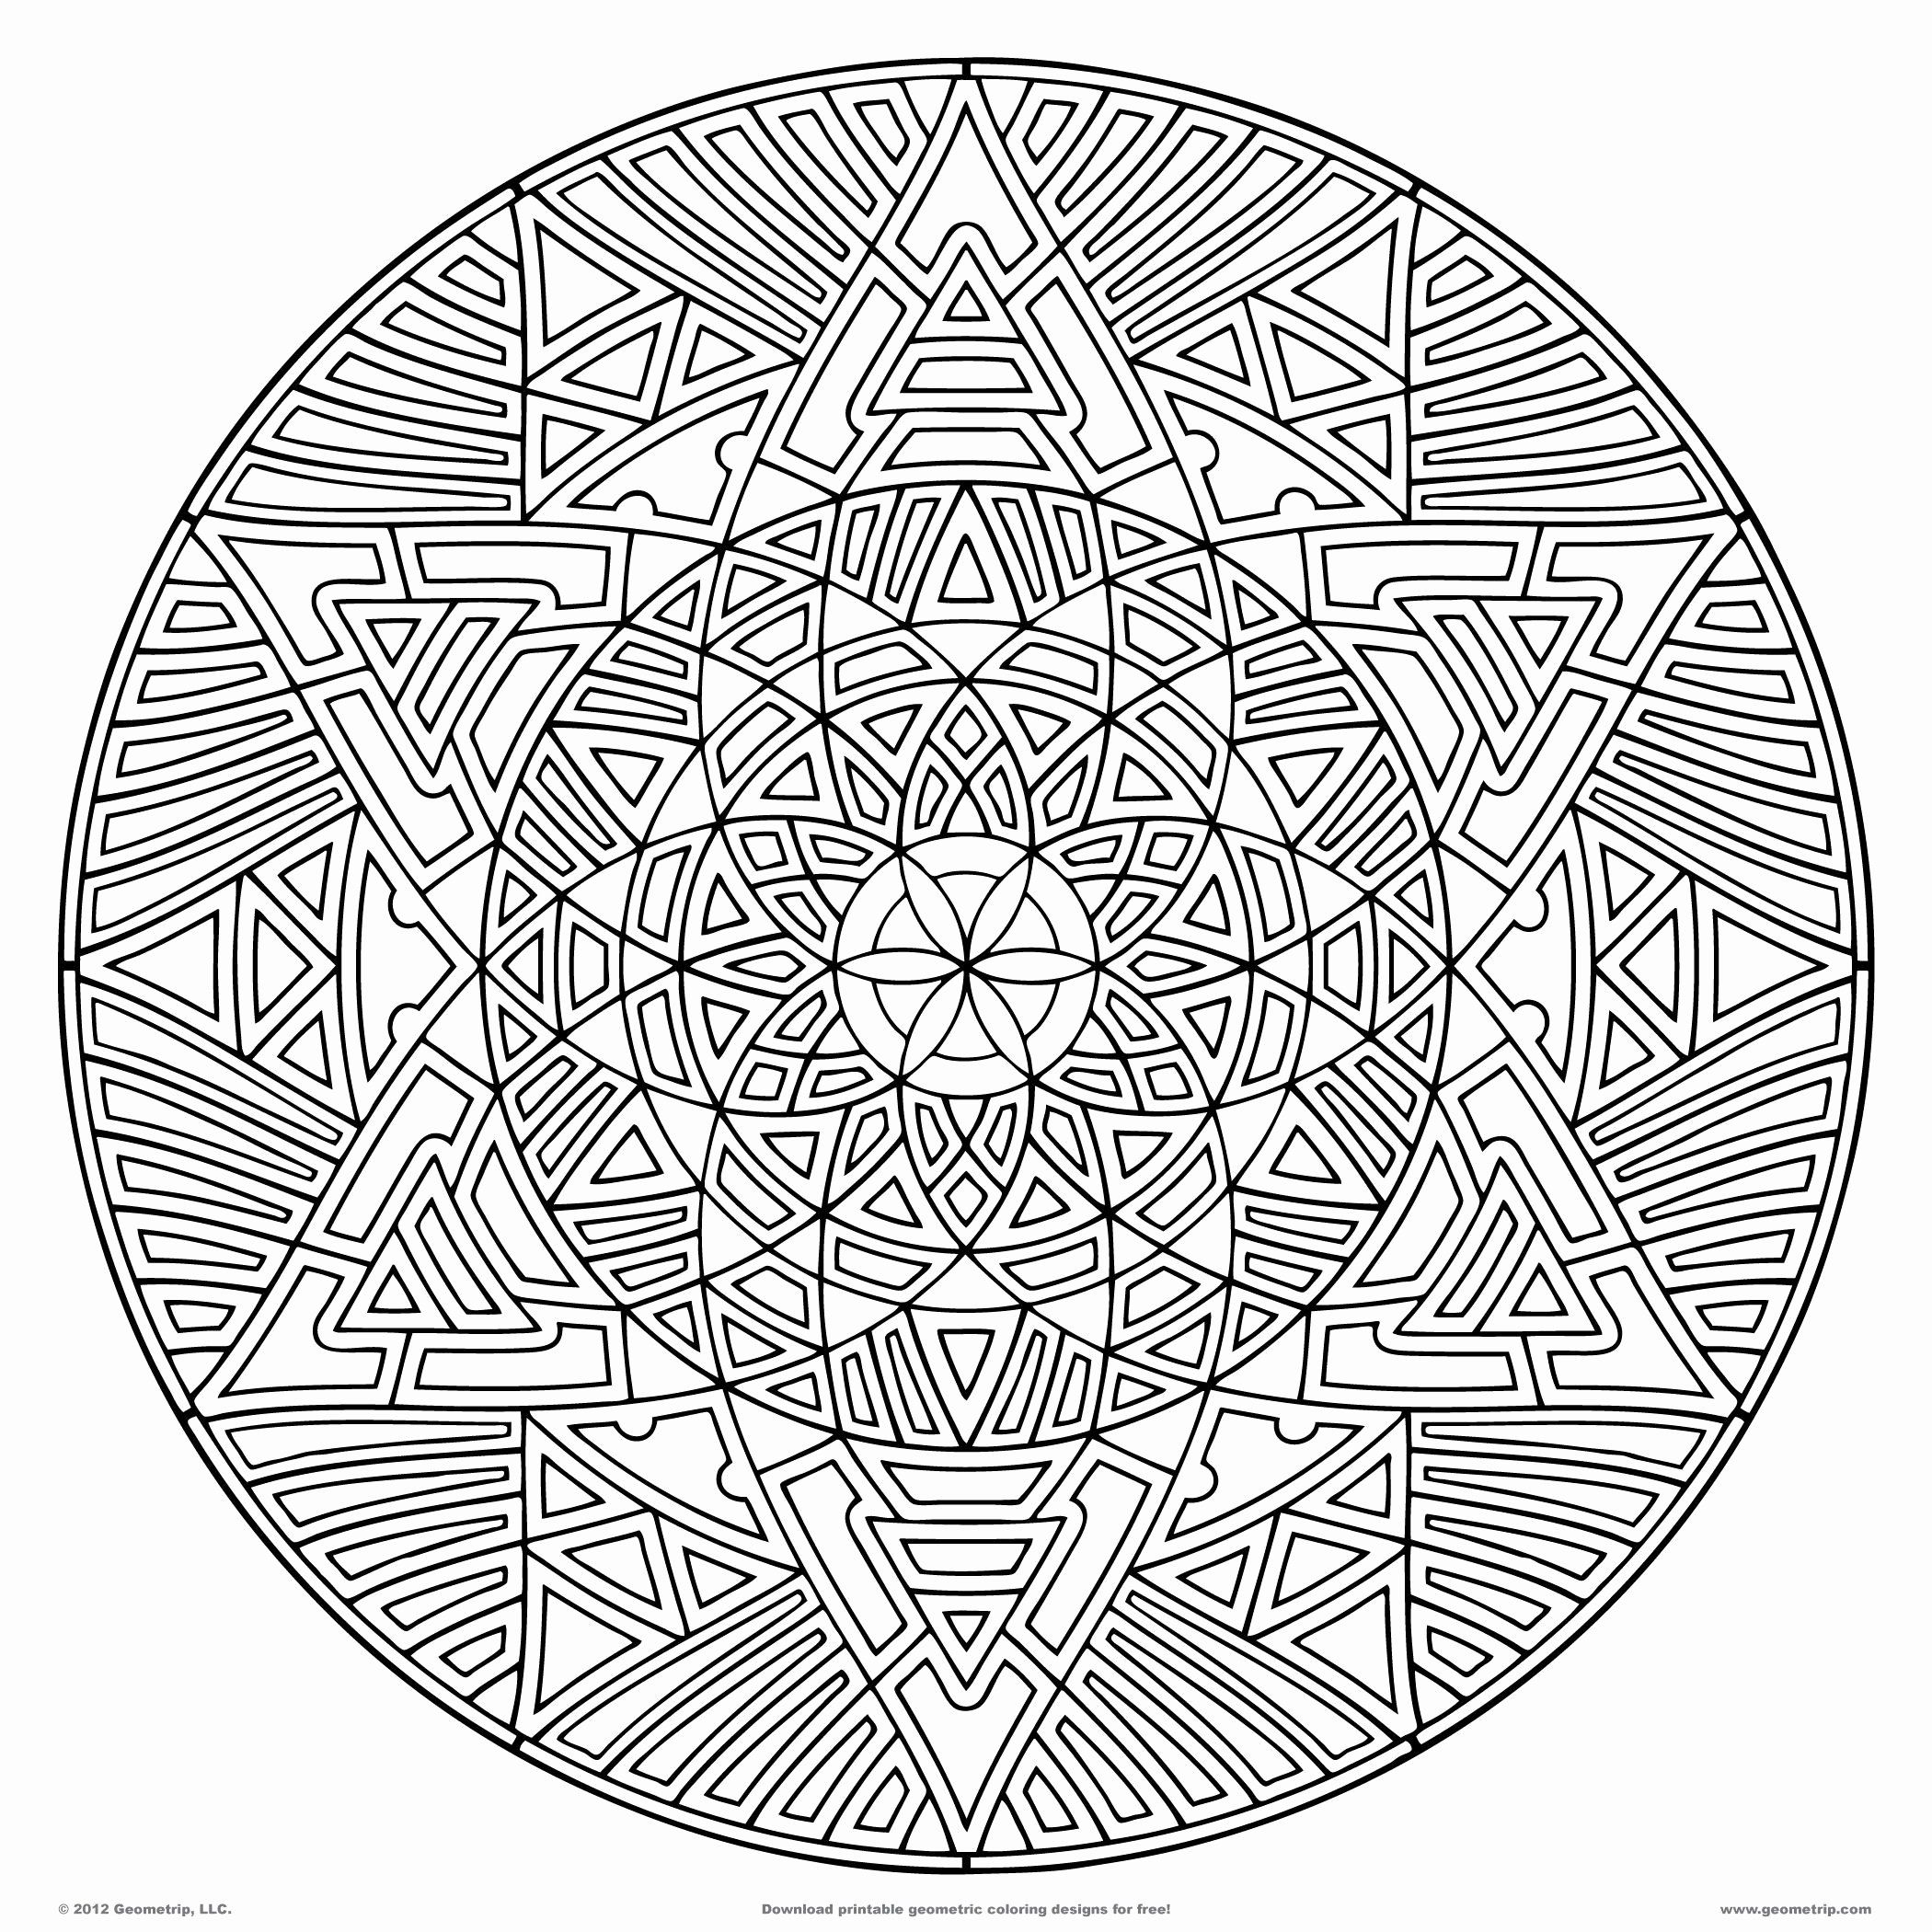 Hard Coloring Pages Pdf Luxury Hard Geometric Coloring Pages At Getcolorings In 2020 Geometric Coloring Pages Detailed Coloring Pages Abstract Coloring Pages